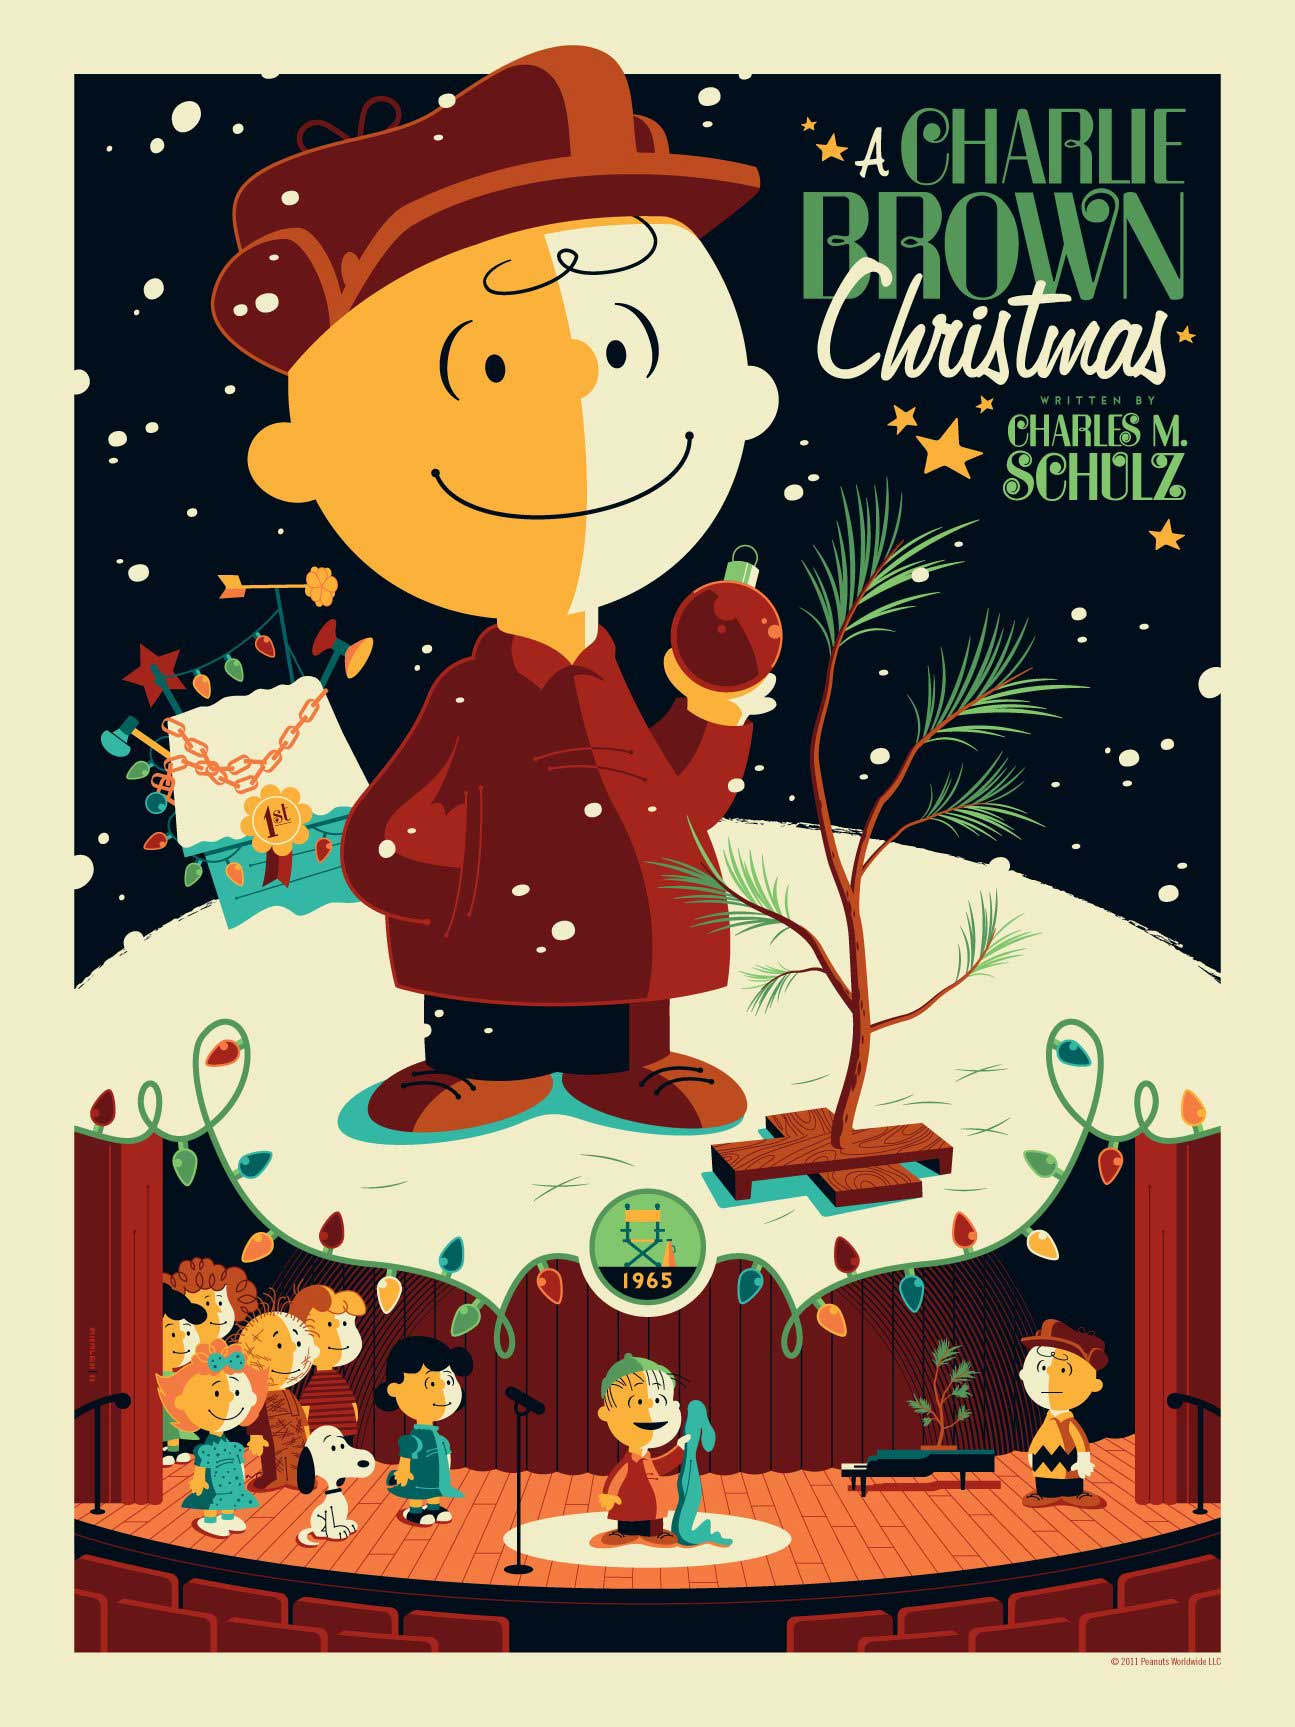 Whalen A Charlie Brown Christmas